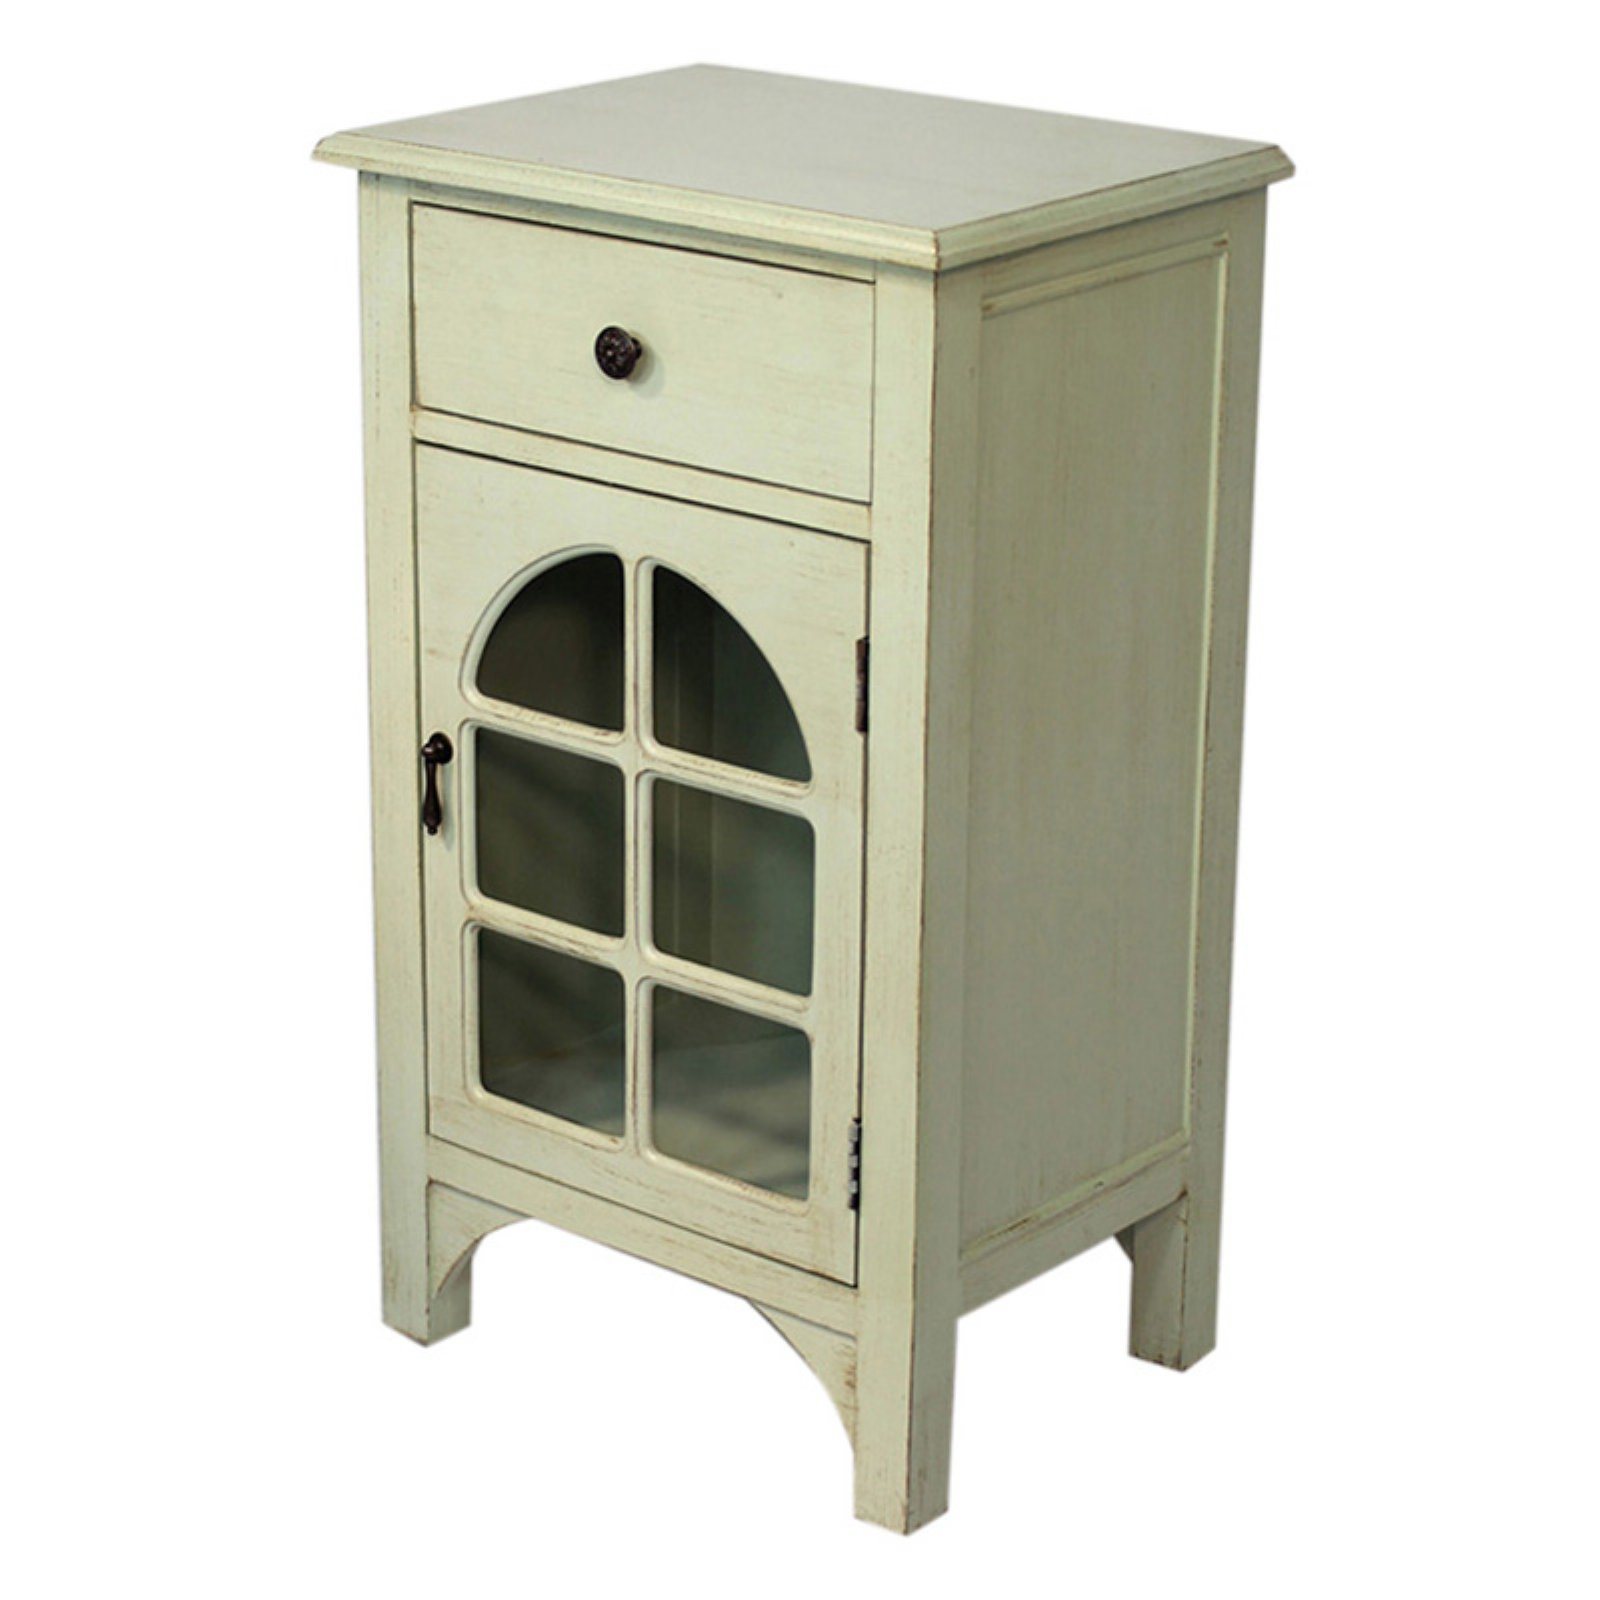 Heather Ann Creations Vivian Arched Glass Accent Cabinet